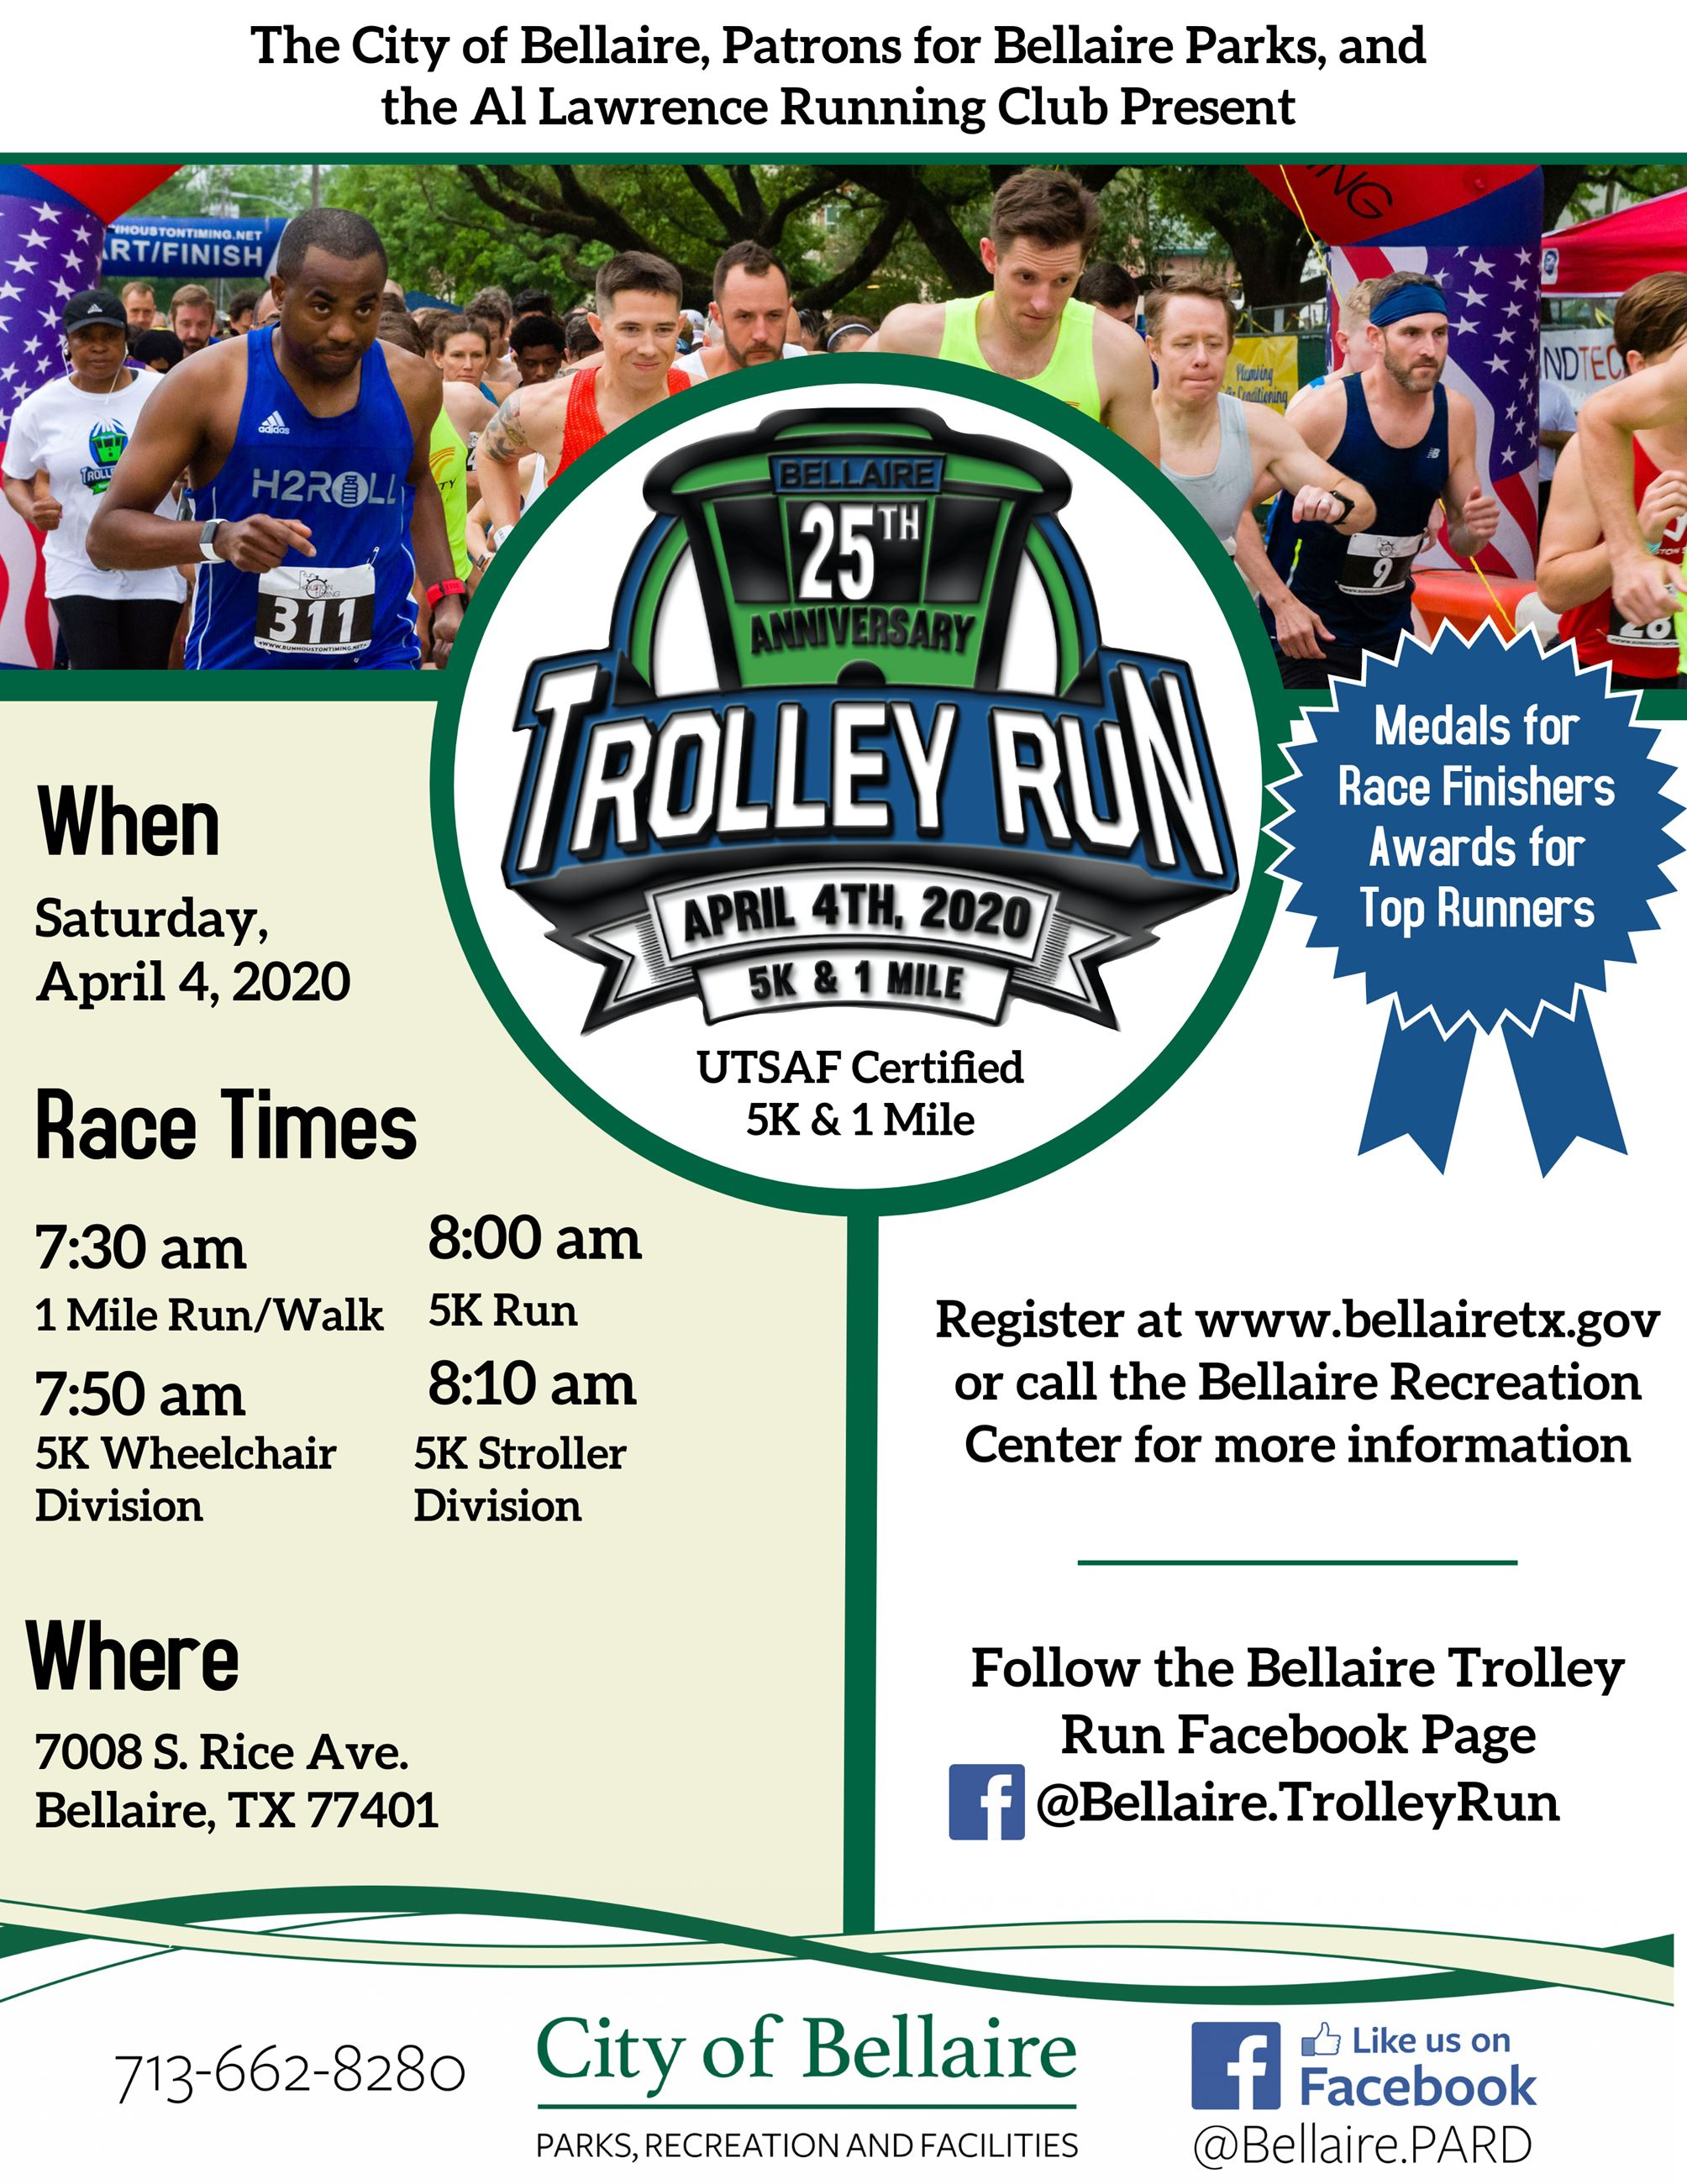 Trolley Run 2020 Flyer edited 1-14-2020